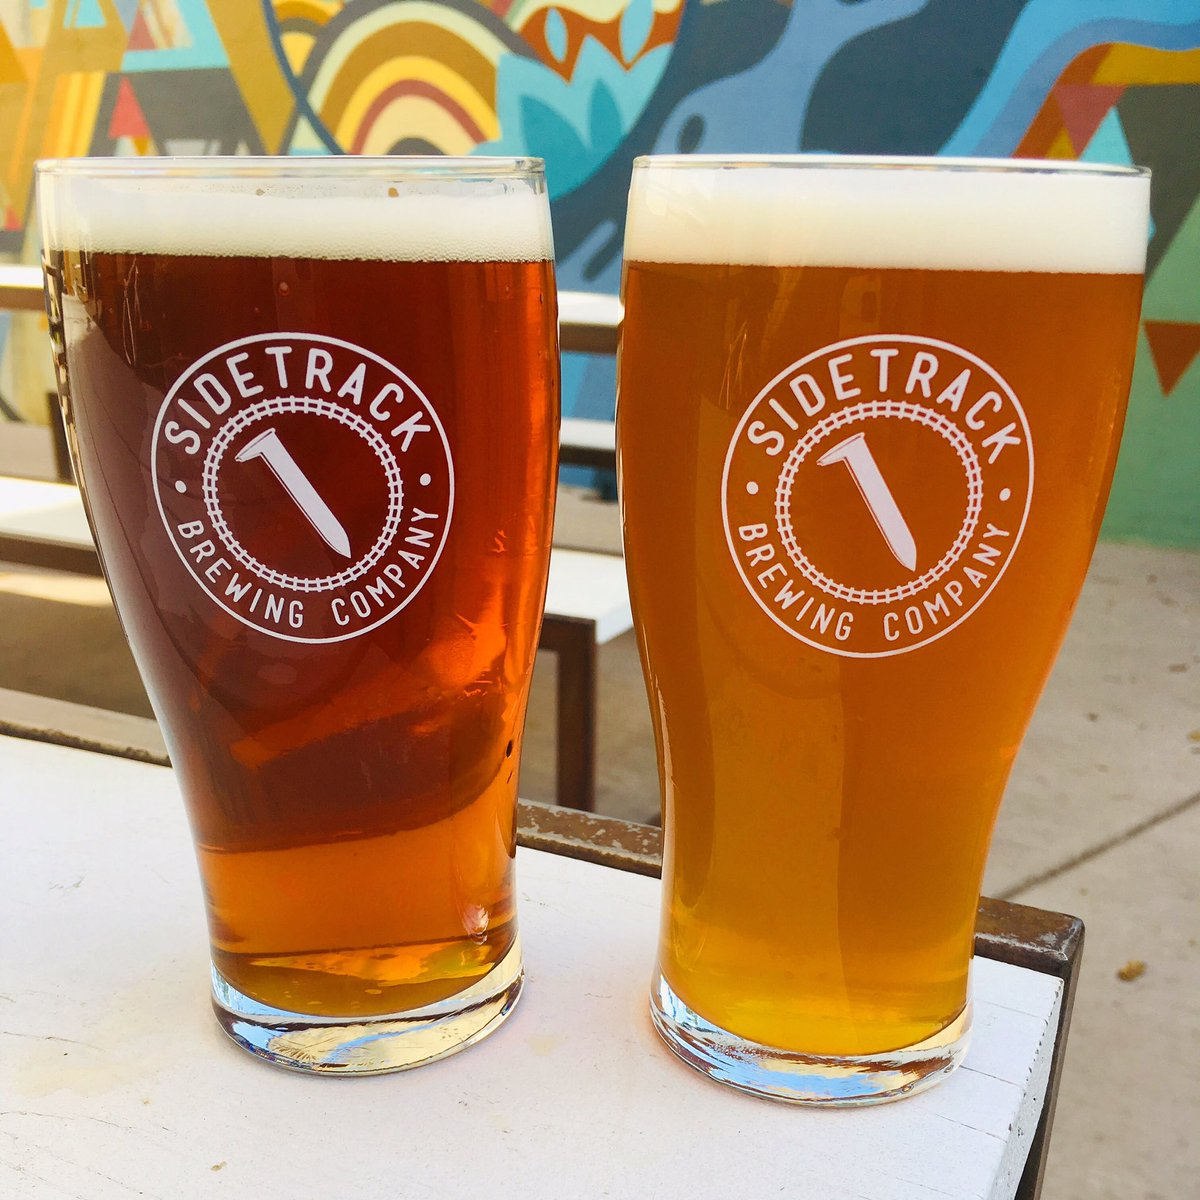 New Beers Amber Lager   Flipside IPA-West Coast style IPA https://t.co/QHQx5S7RJW